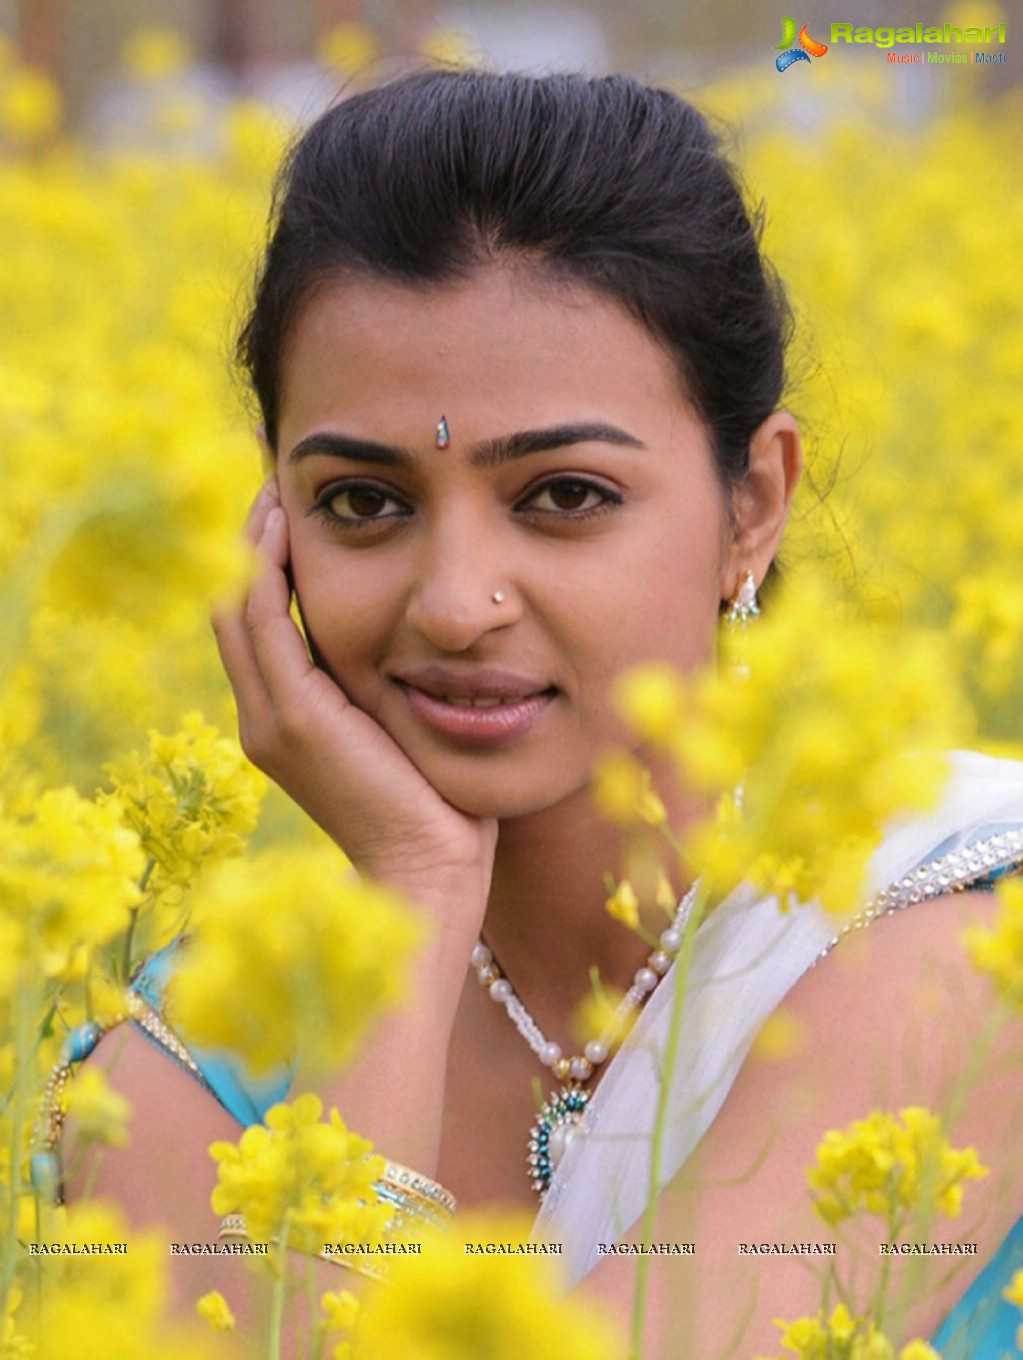 Radhika Apte's 'Today' movie details